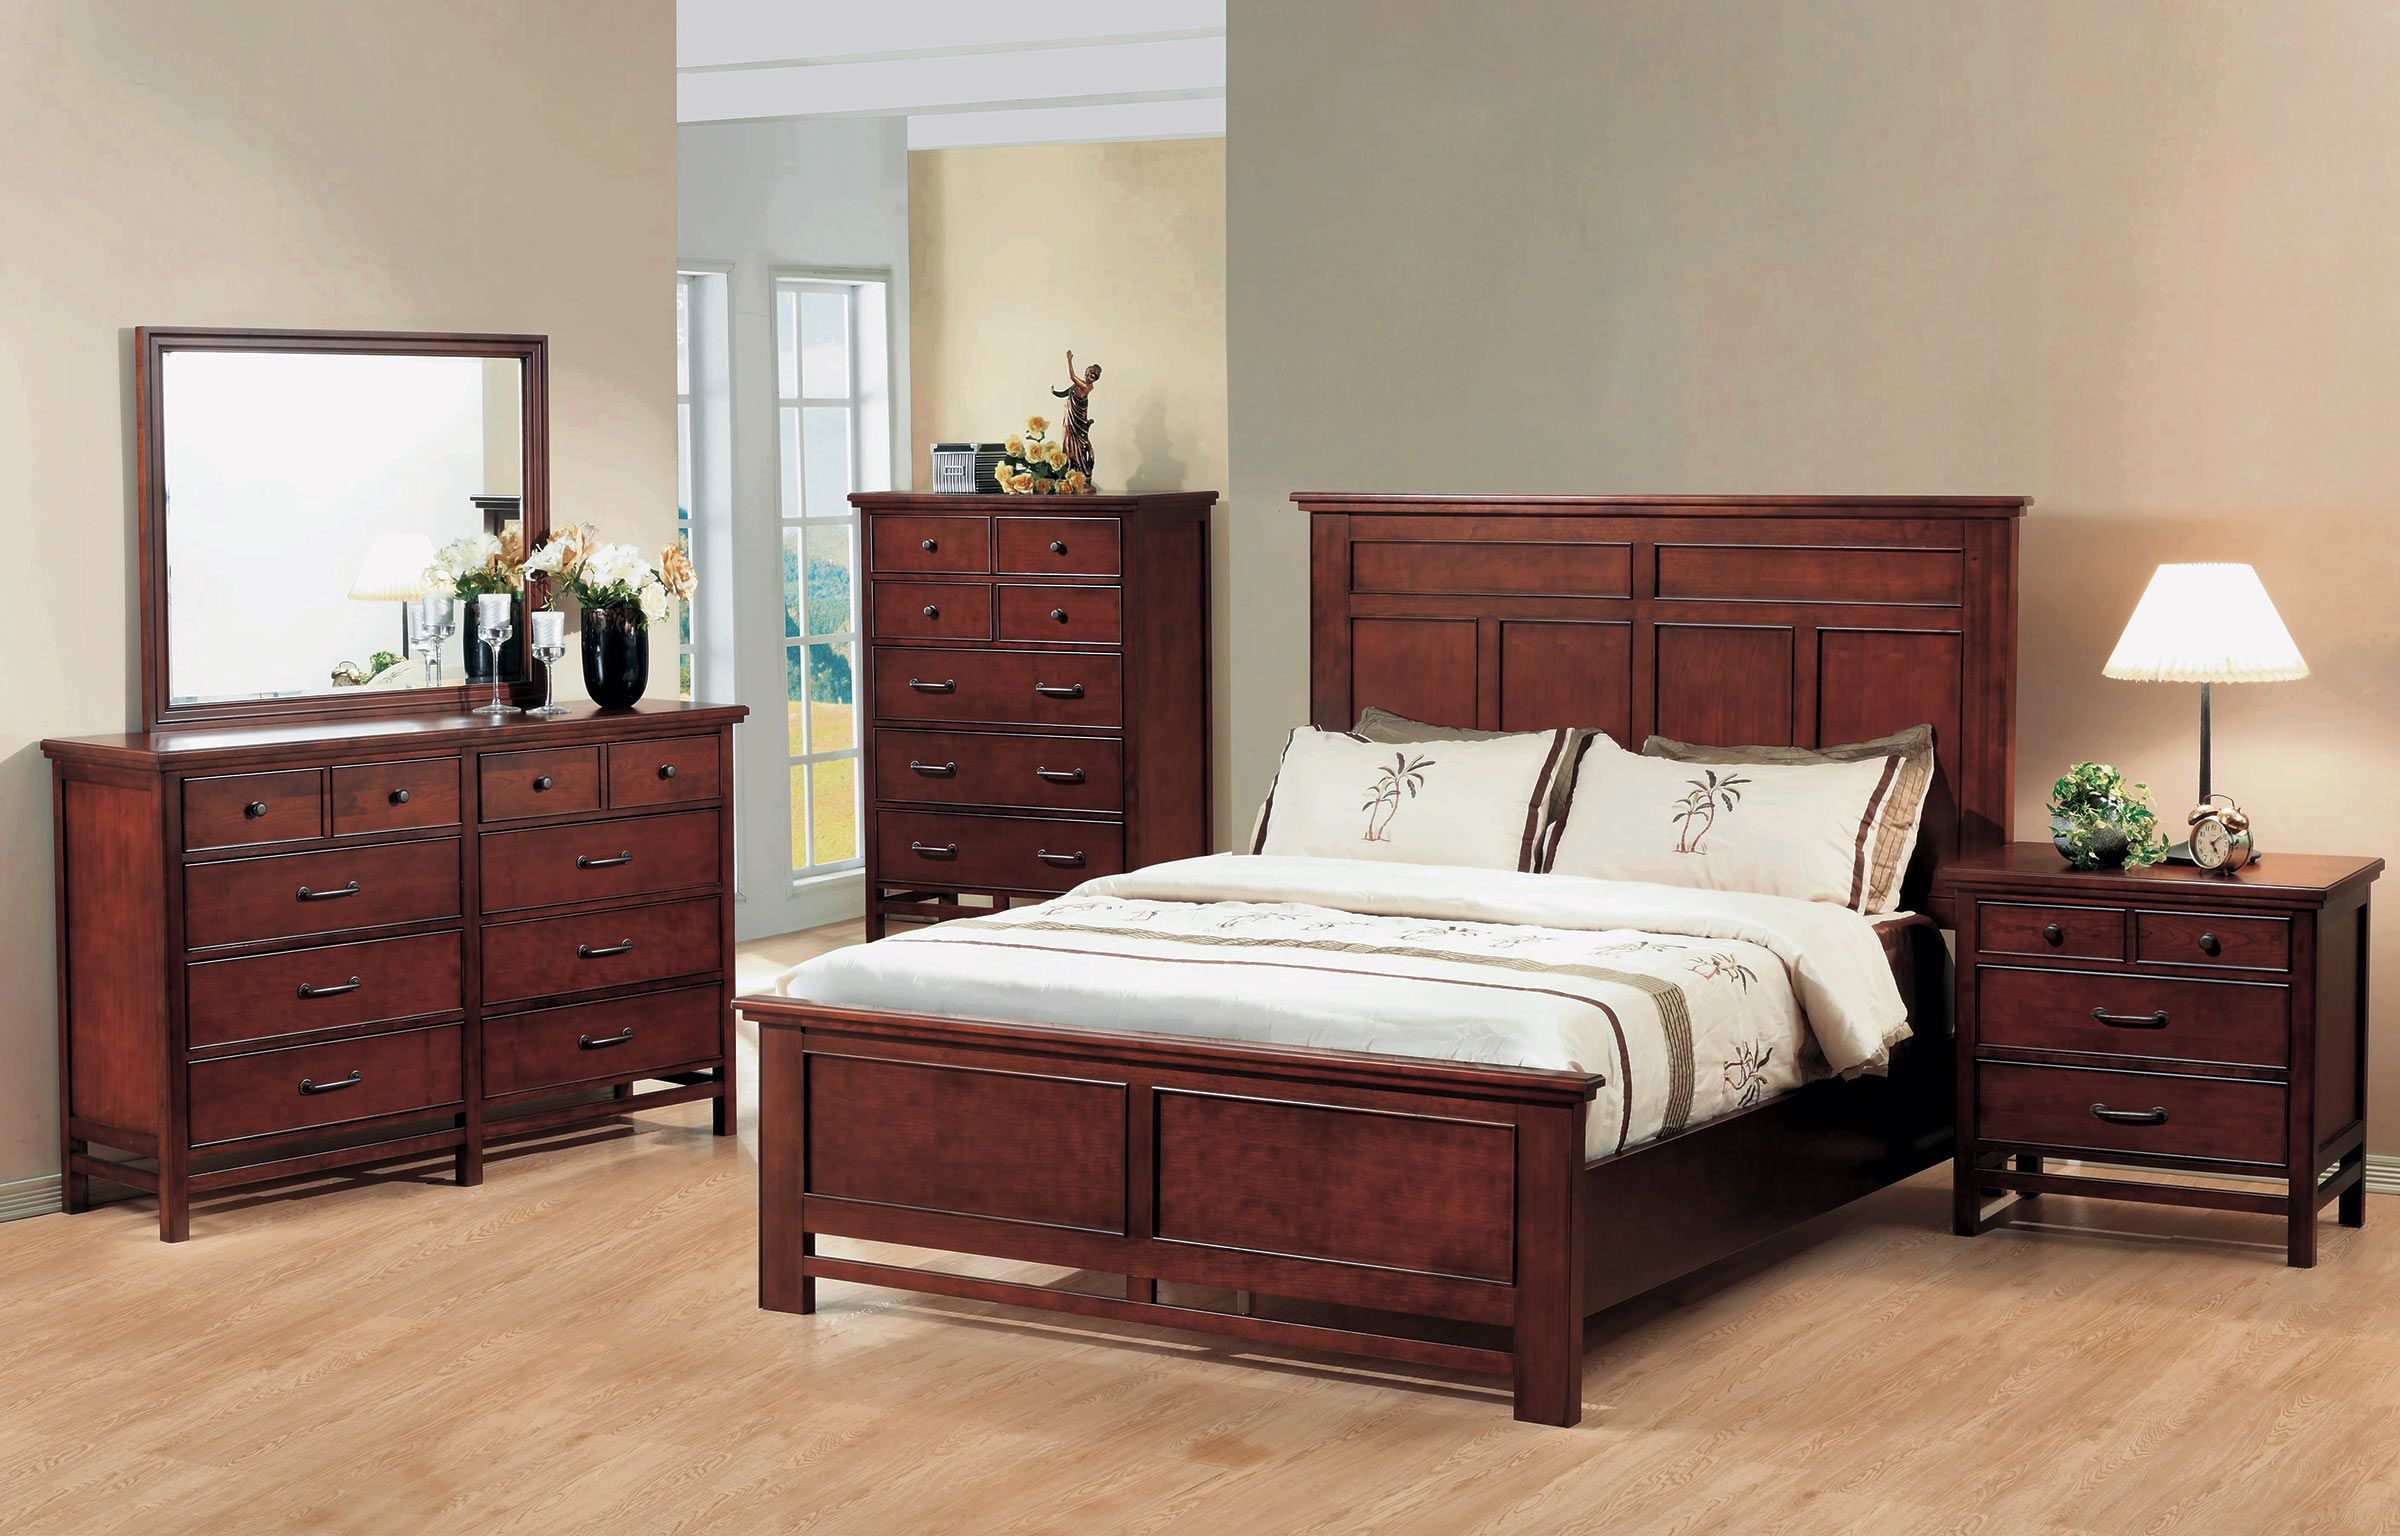 Master bedroom furniture  The Willow Creek collection is elegant in its simplicity  Bedroom